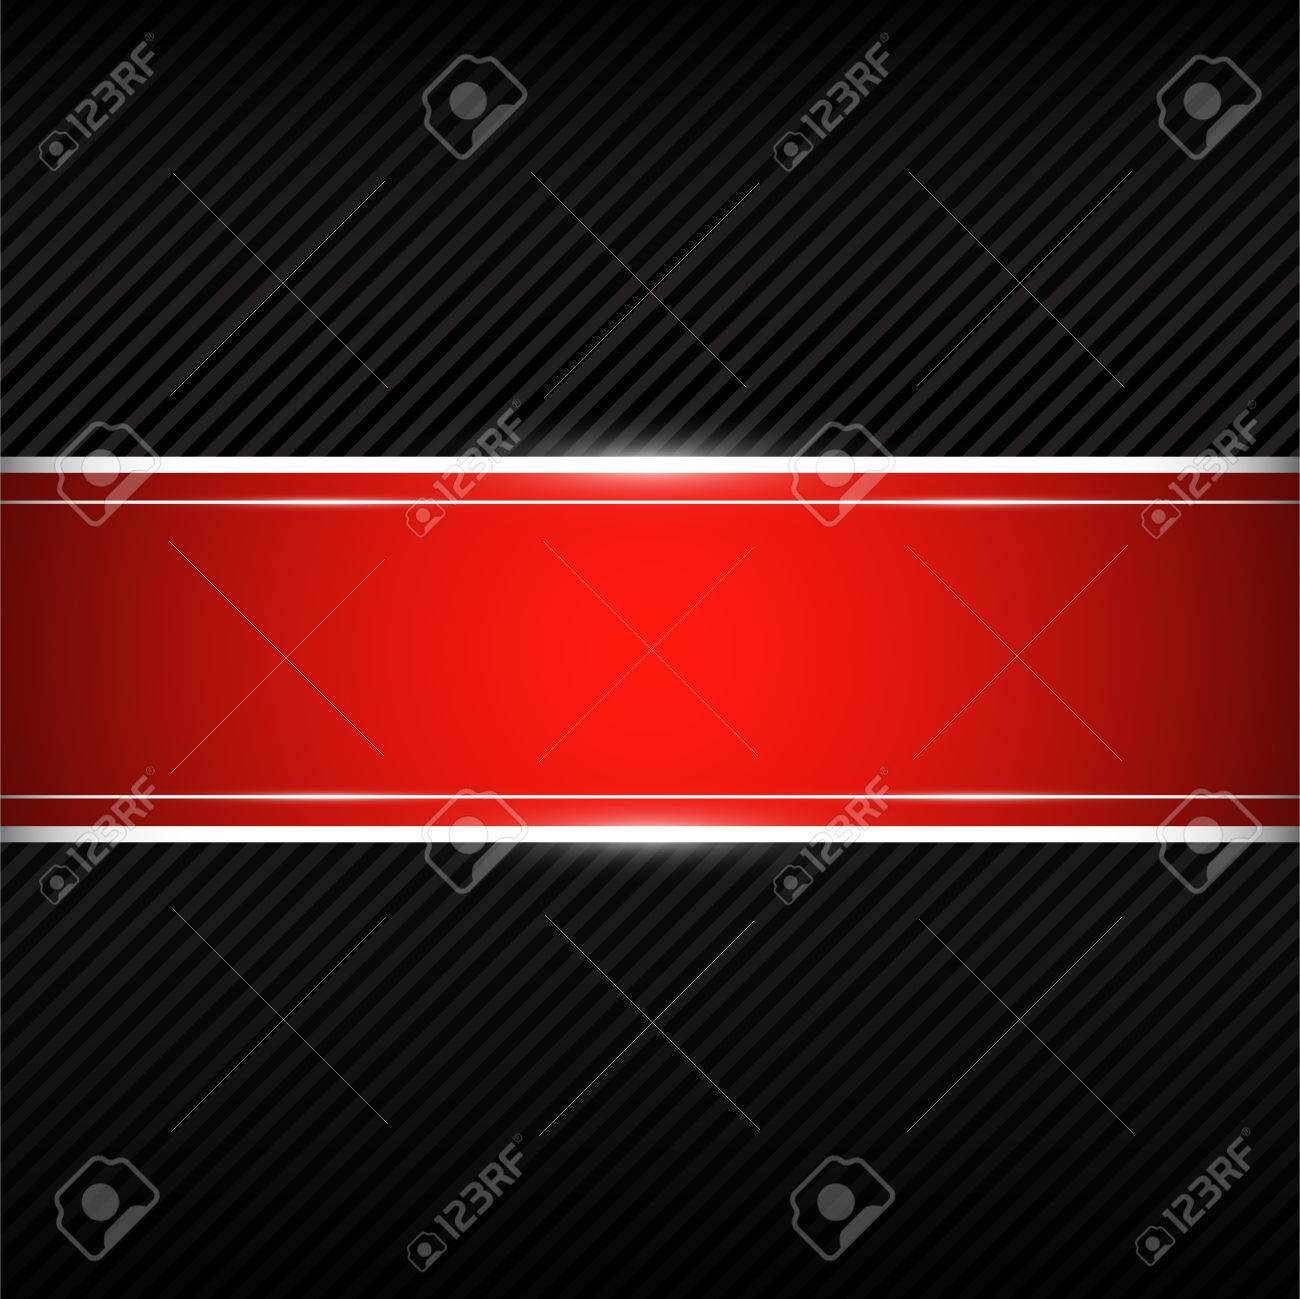 Black Background With Red Banner Stock Vector